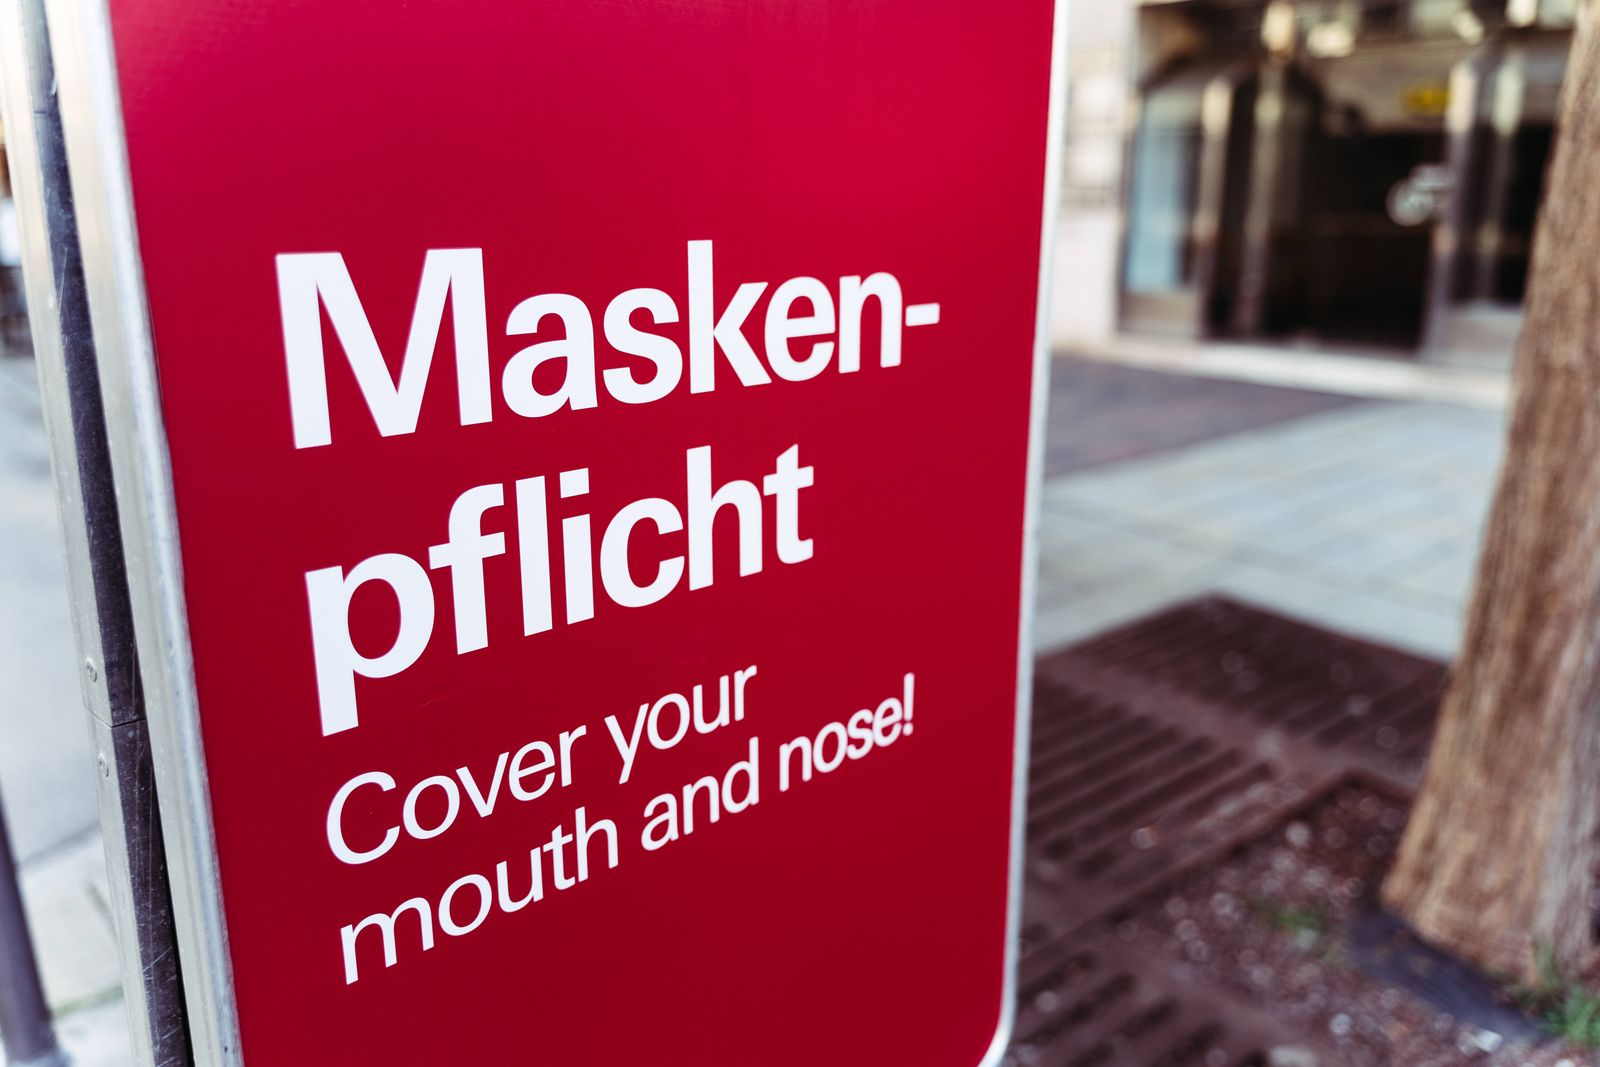 Augsburg, Bavaria, Germany - 27 april 2021: Maskenpflicht cover mouth and nose - sign in the pedestrian zone in the city